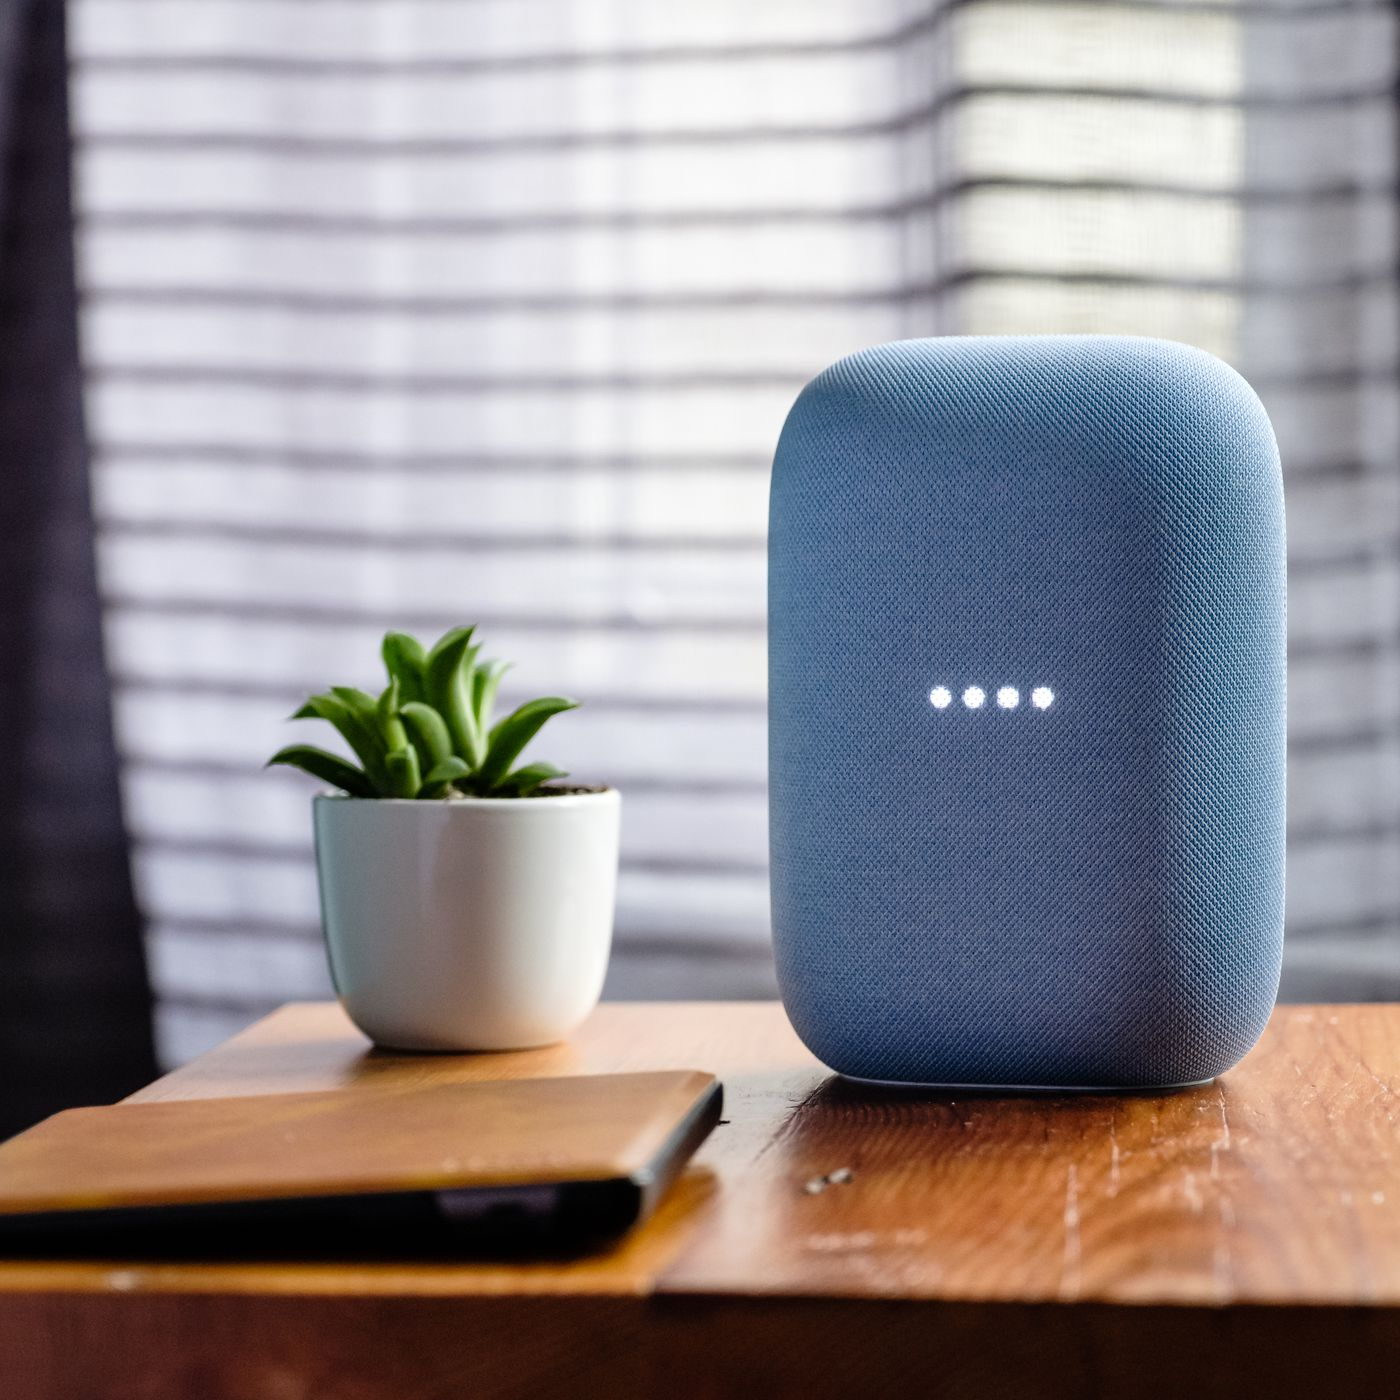 Google Nest Audio Review The Sweet Spot The Verge